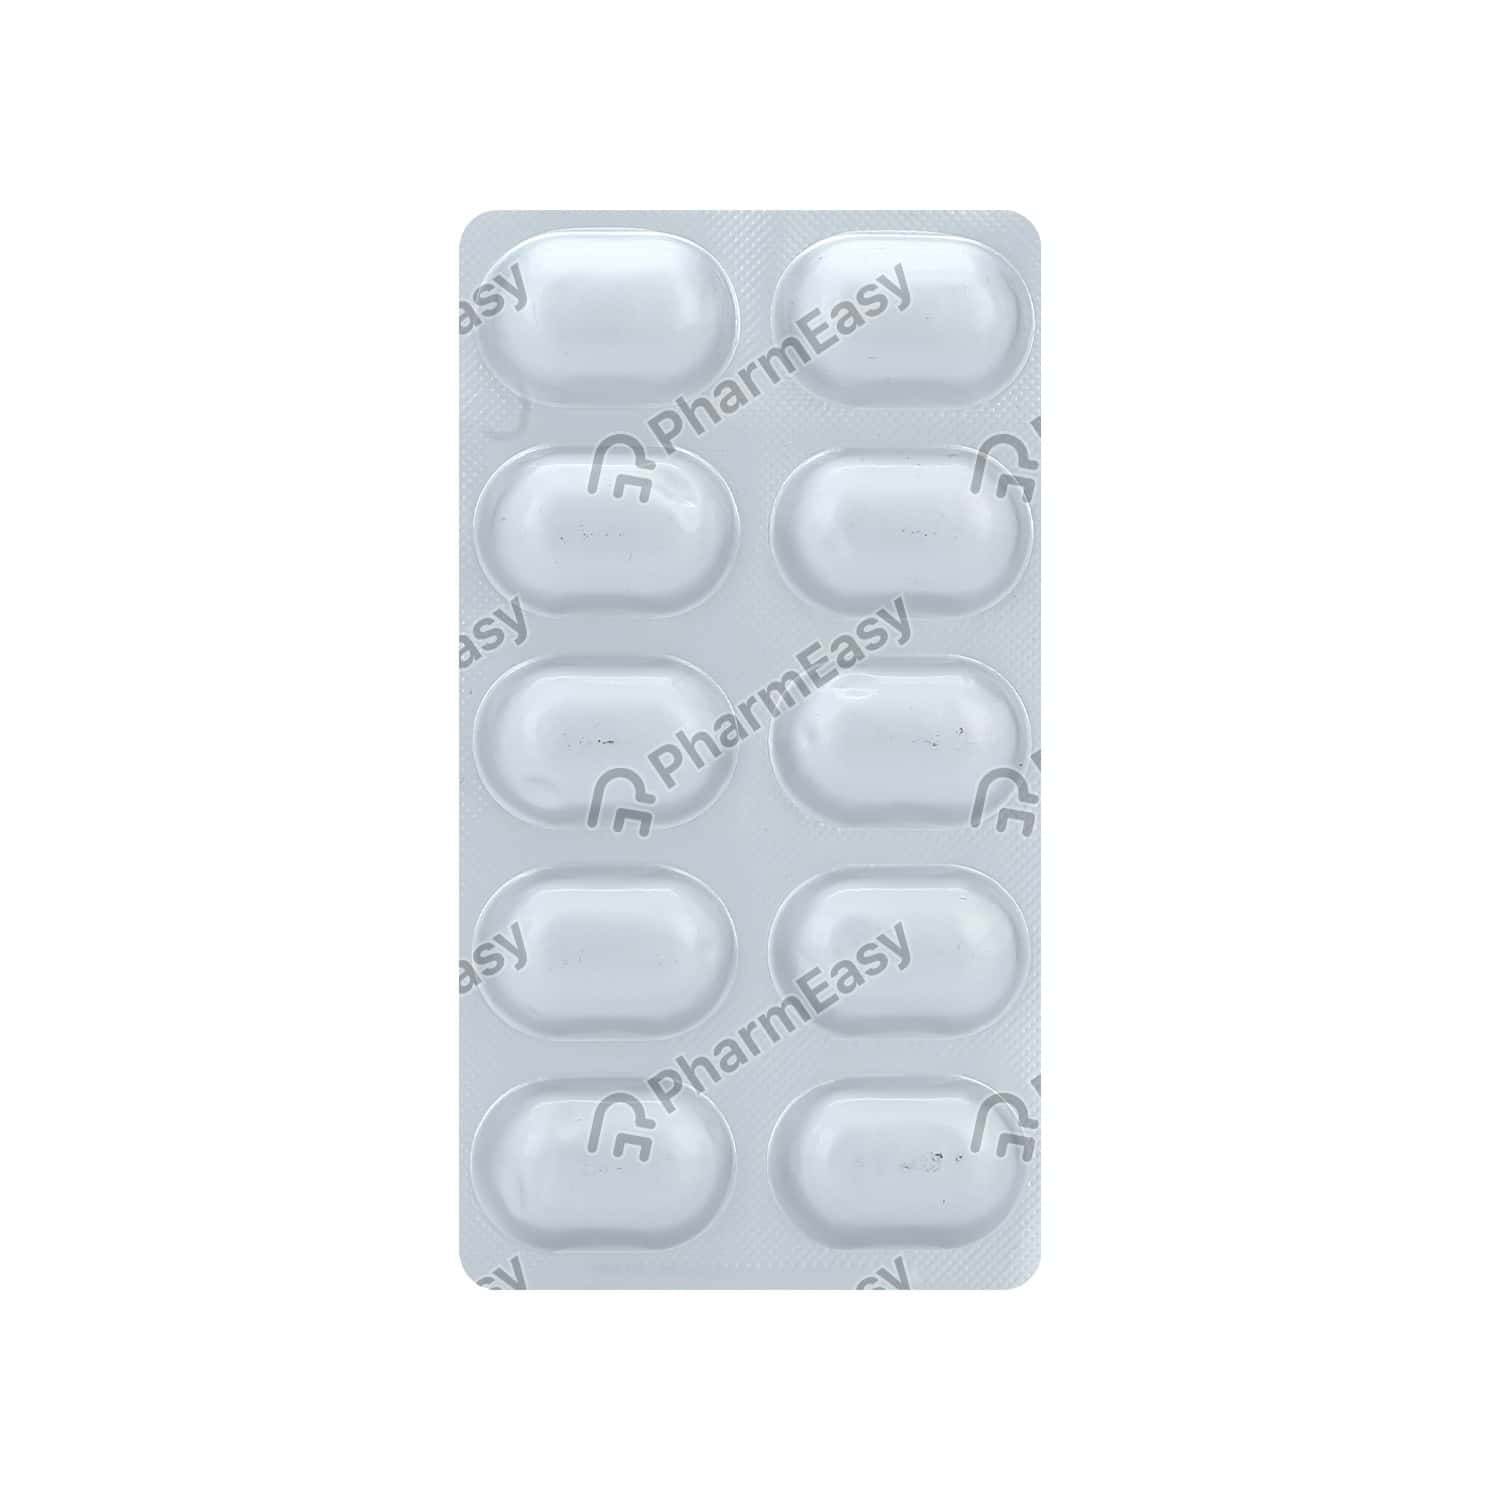 Tendia M Strip Of 10 Tablets